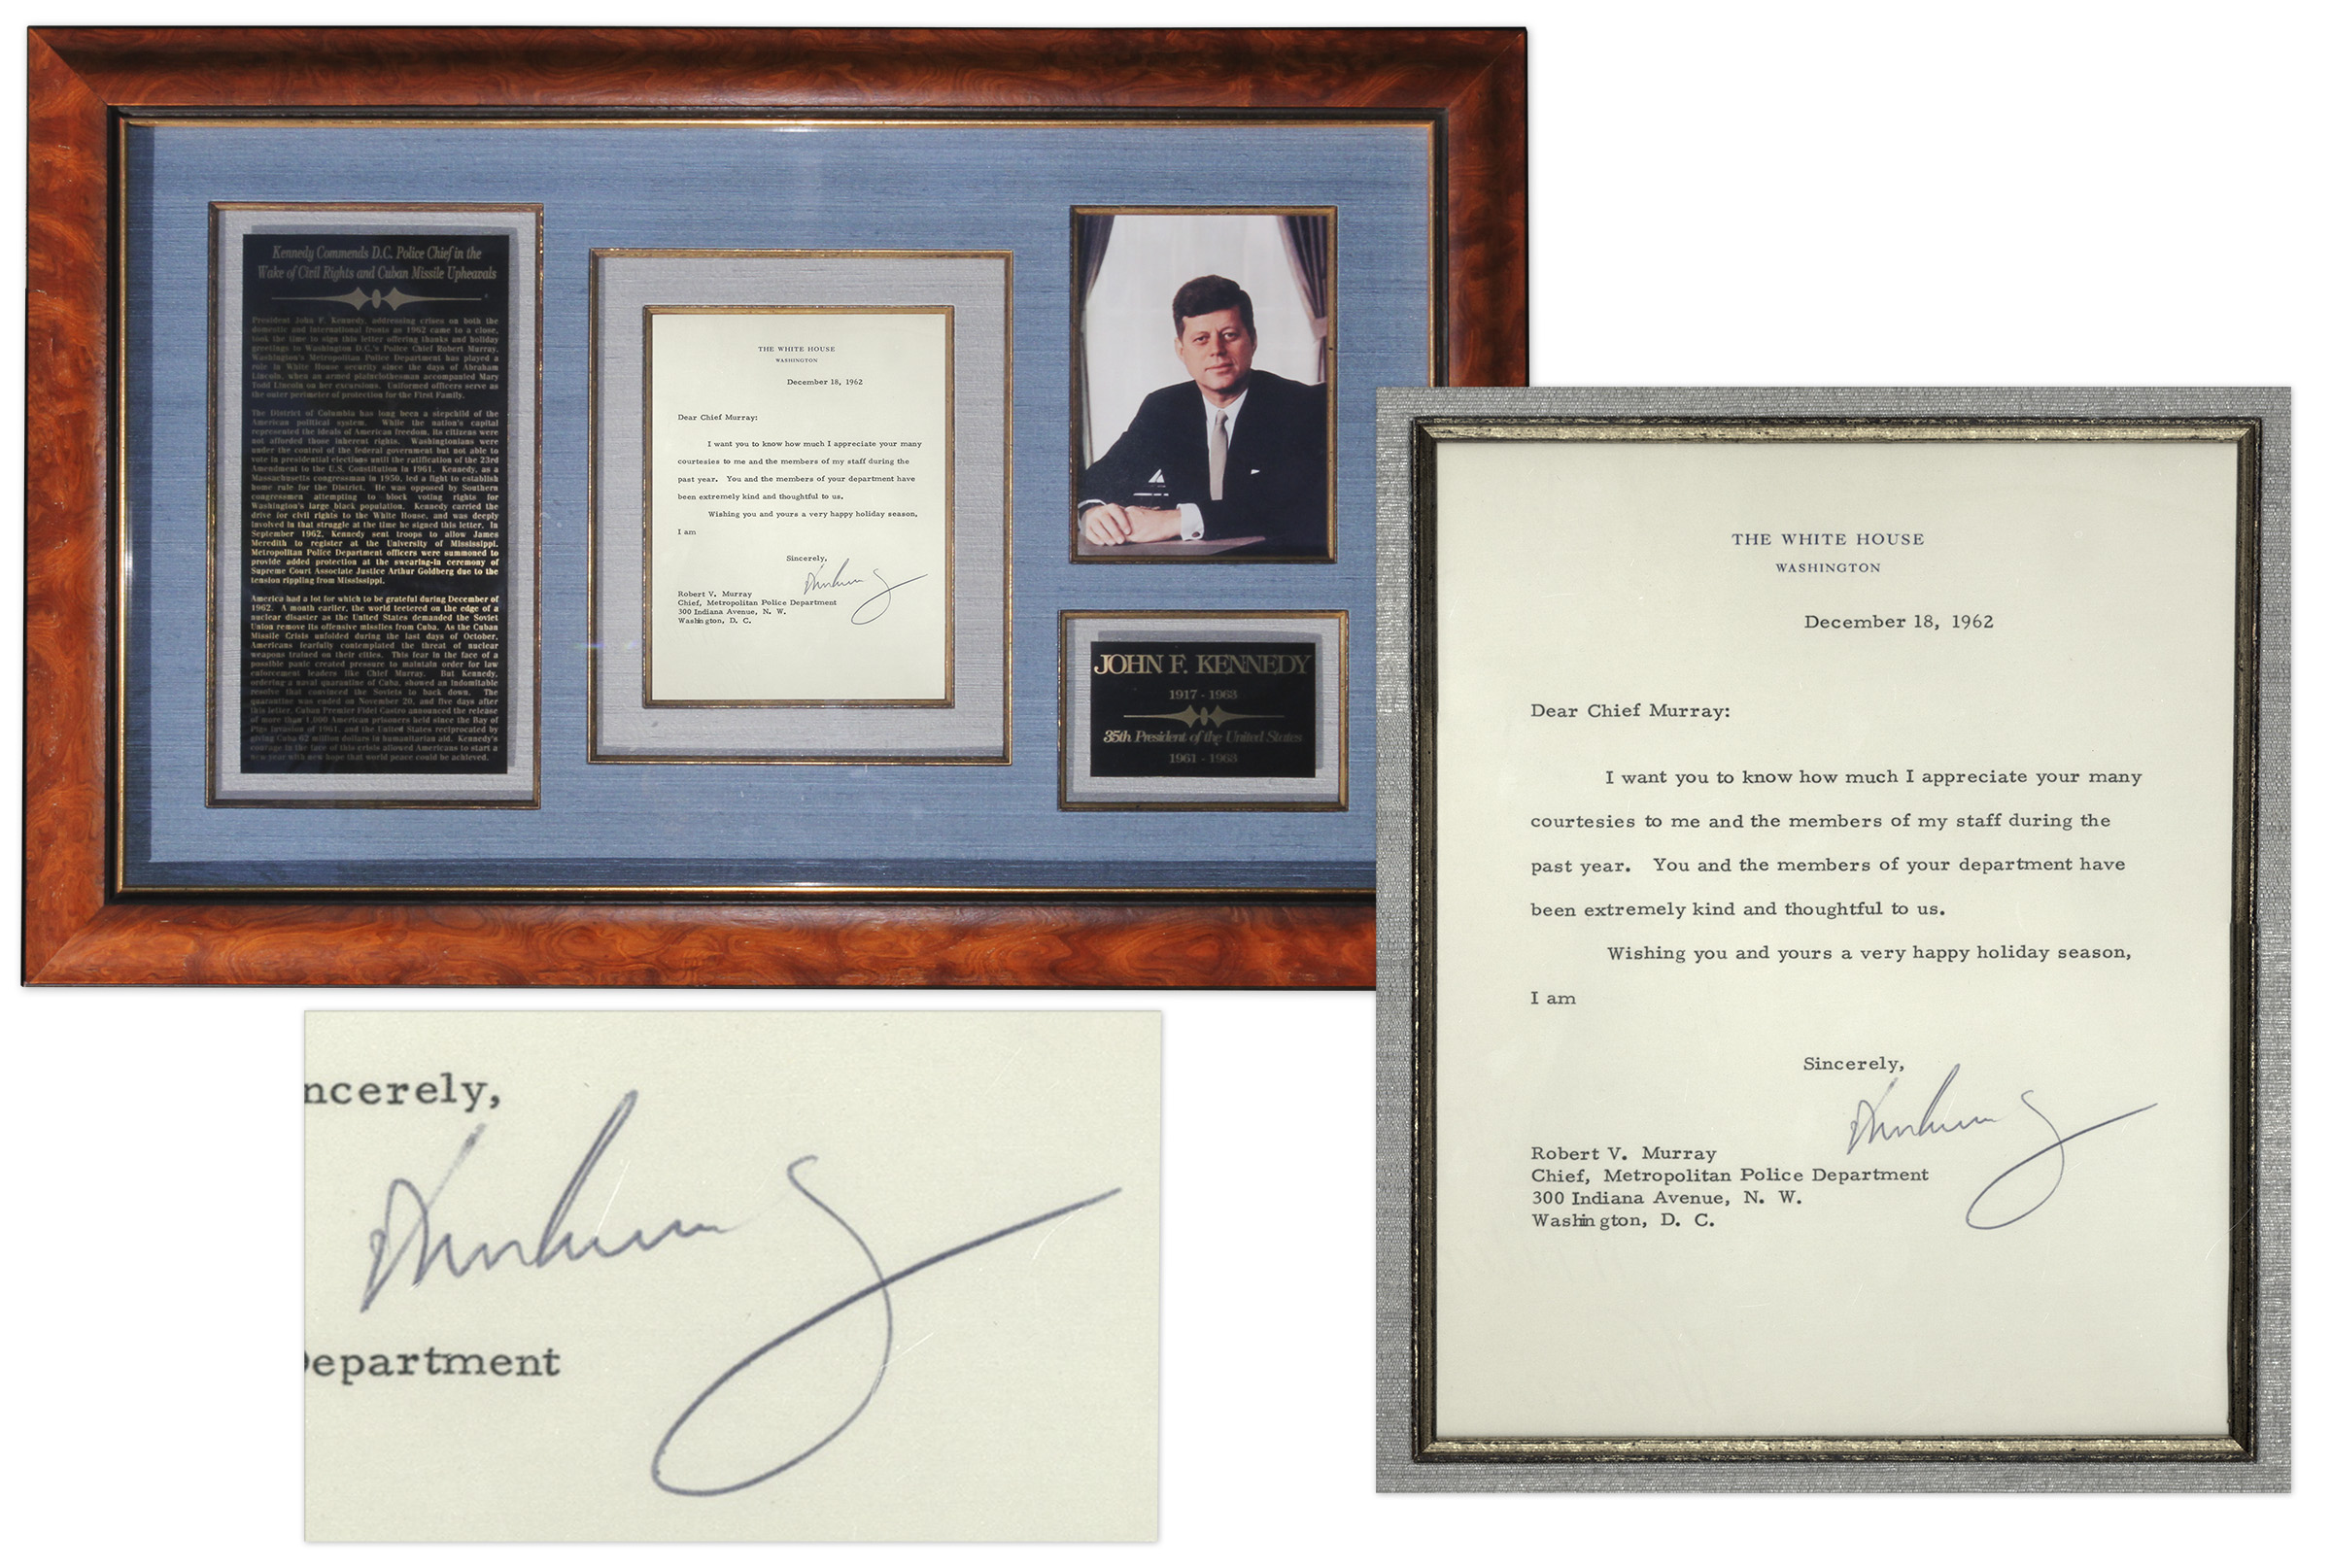 John F Kennedy Autograph John F. Kennedy Letter Signed as President -- Sent to DC Police Chief: ''...You and the members of your department have been very kind and thoughtful to us...'' -- With University Archives COA